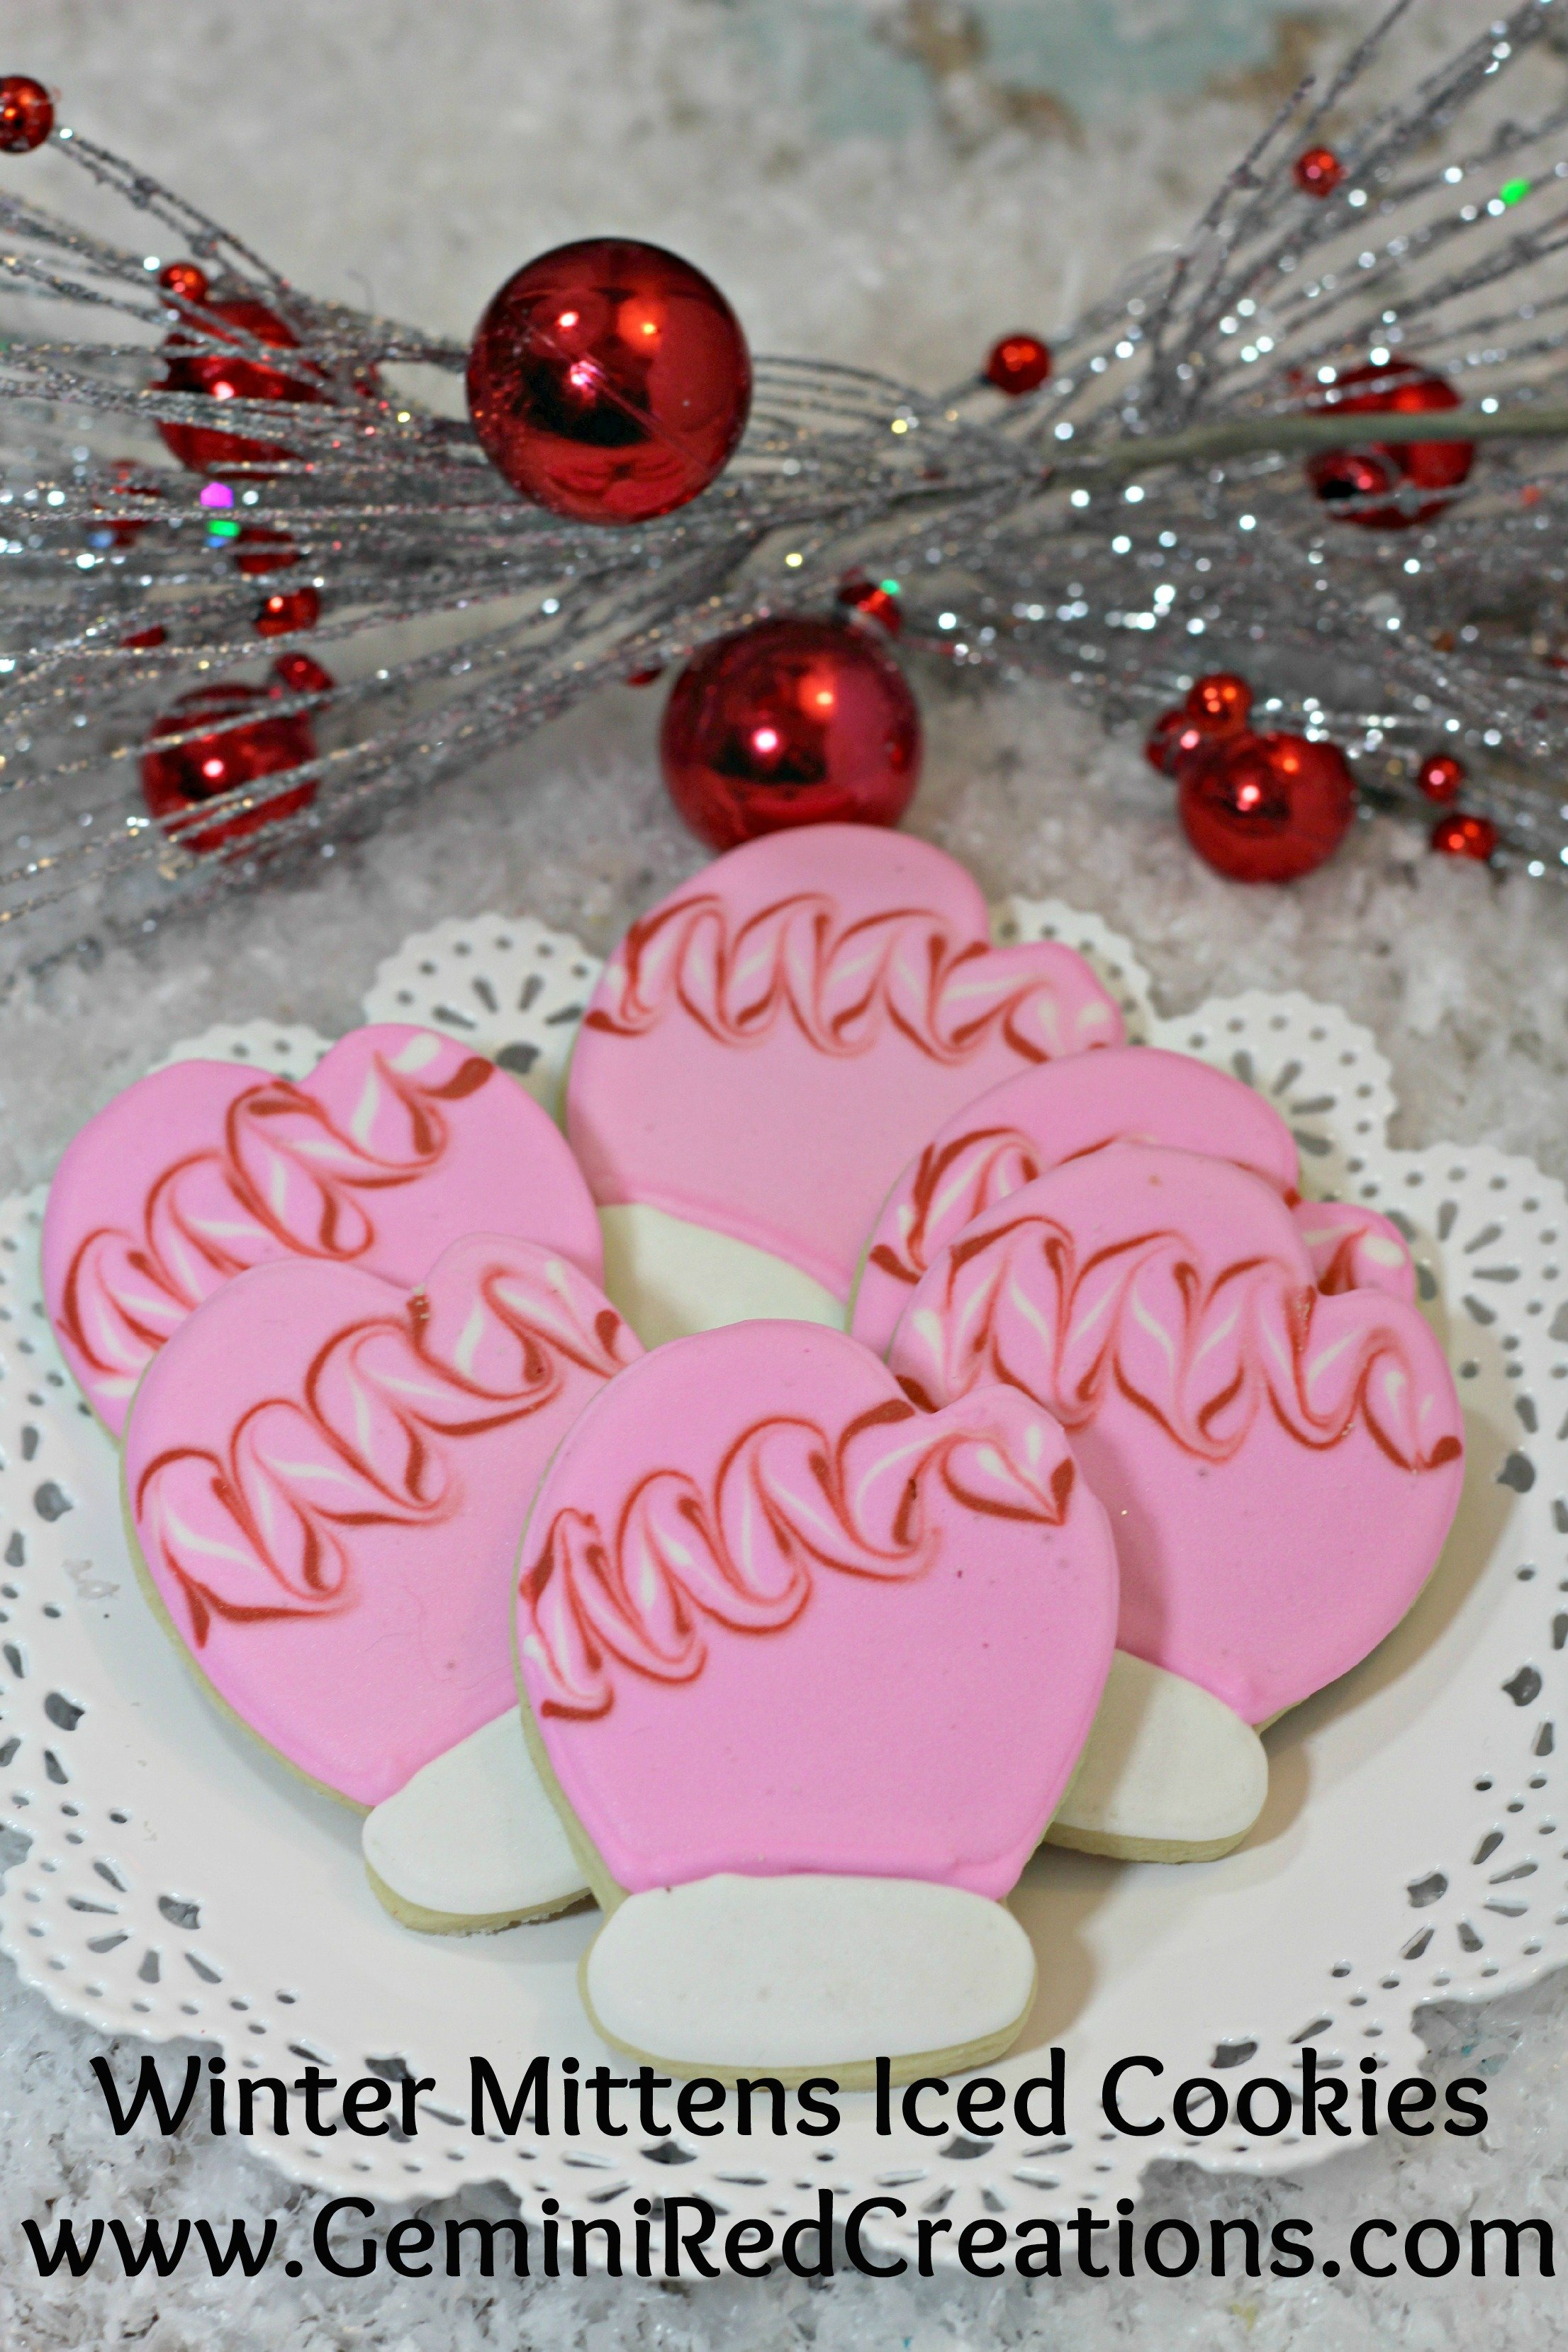 Winter Mittens Iced Cookies